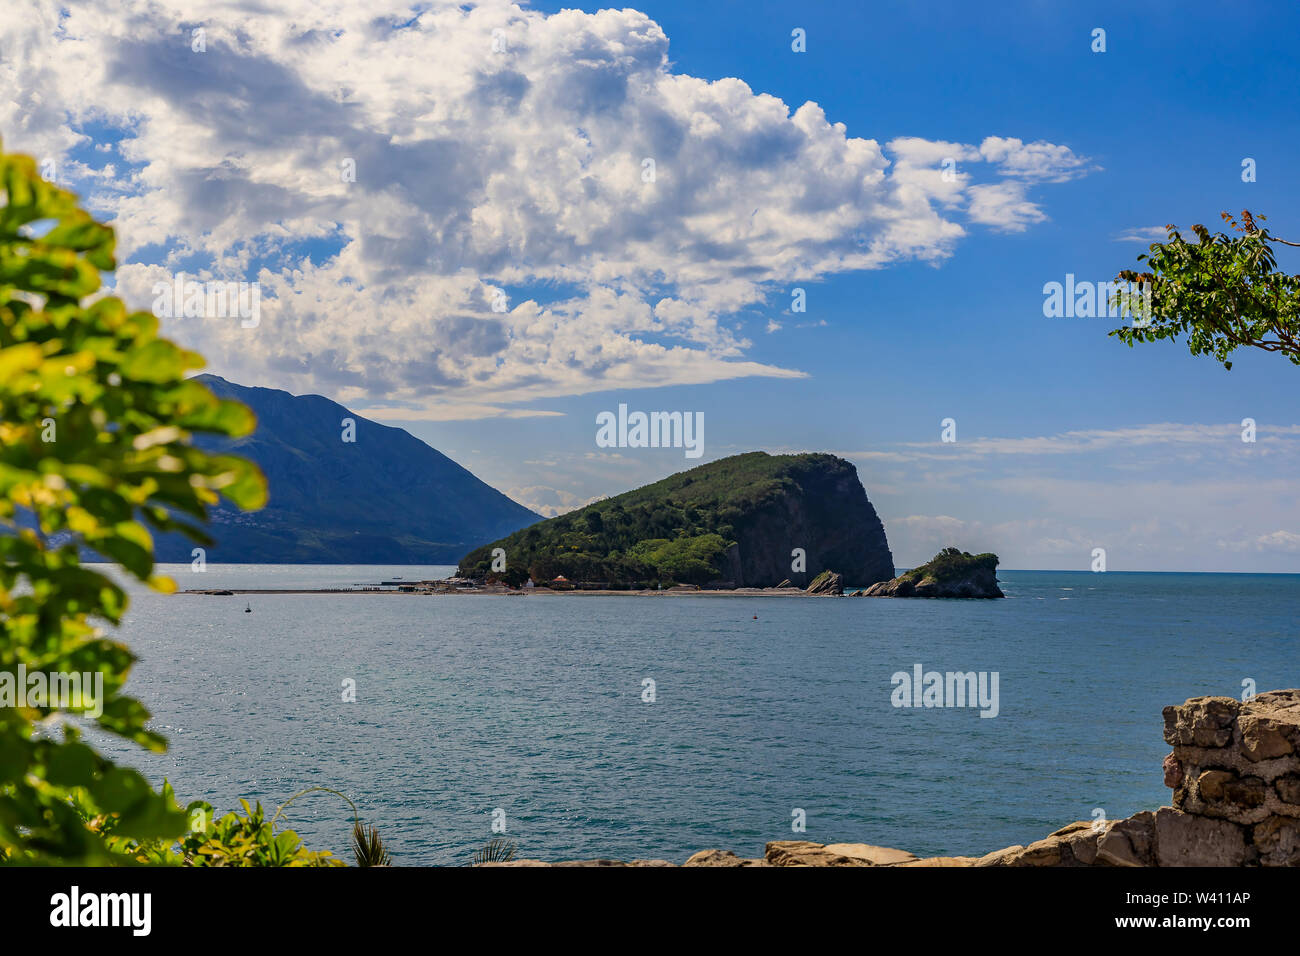 Island of St. Nicholas or Hawaii, small island in the Adriatic sea near Budva Montenegro at sunset - Stock Image